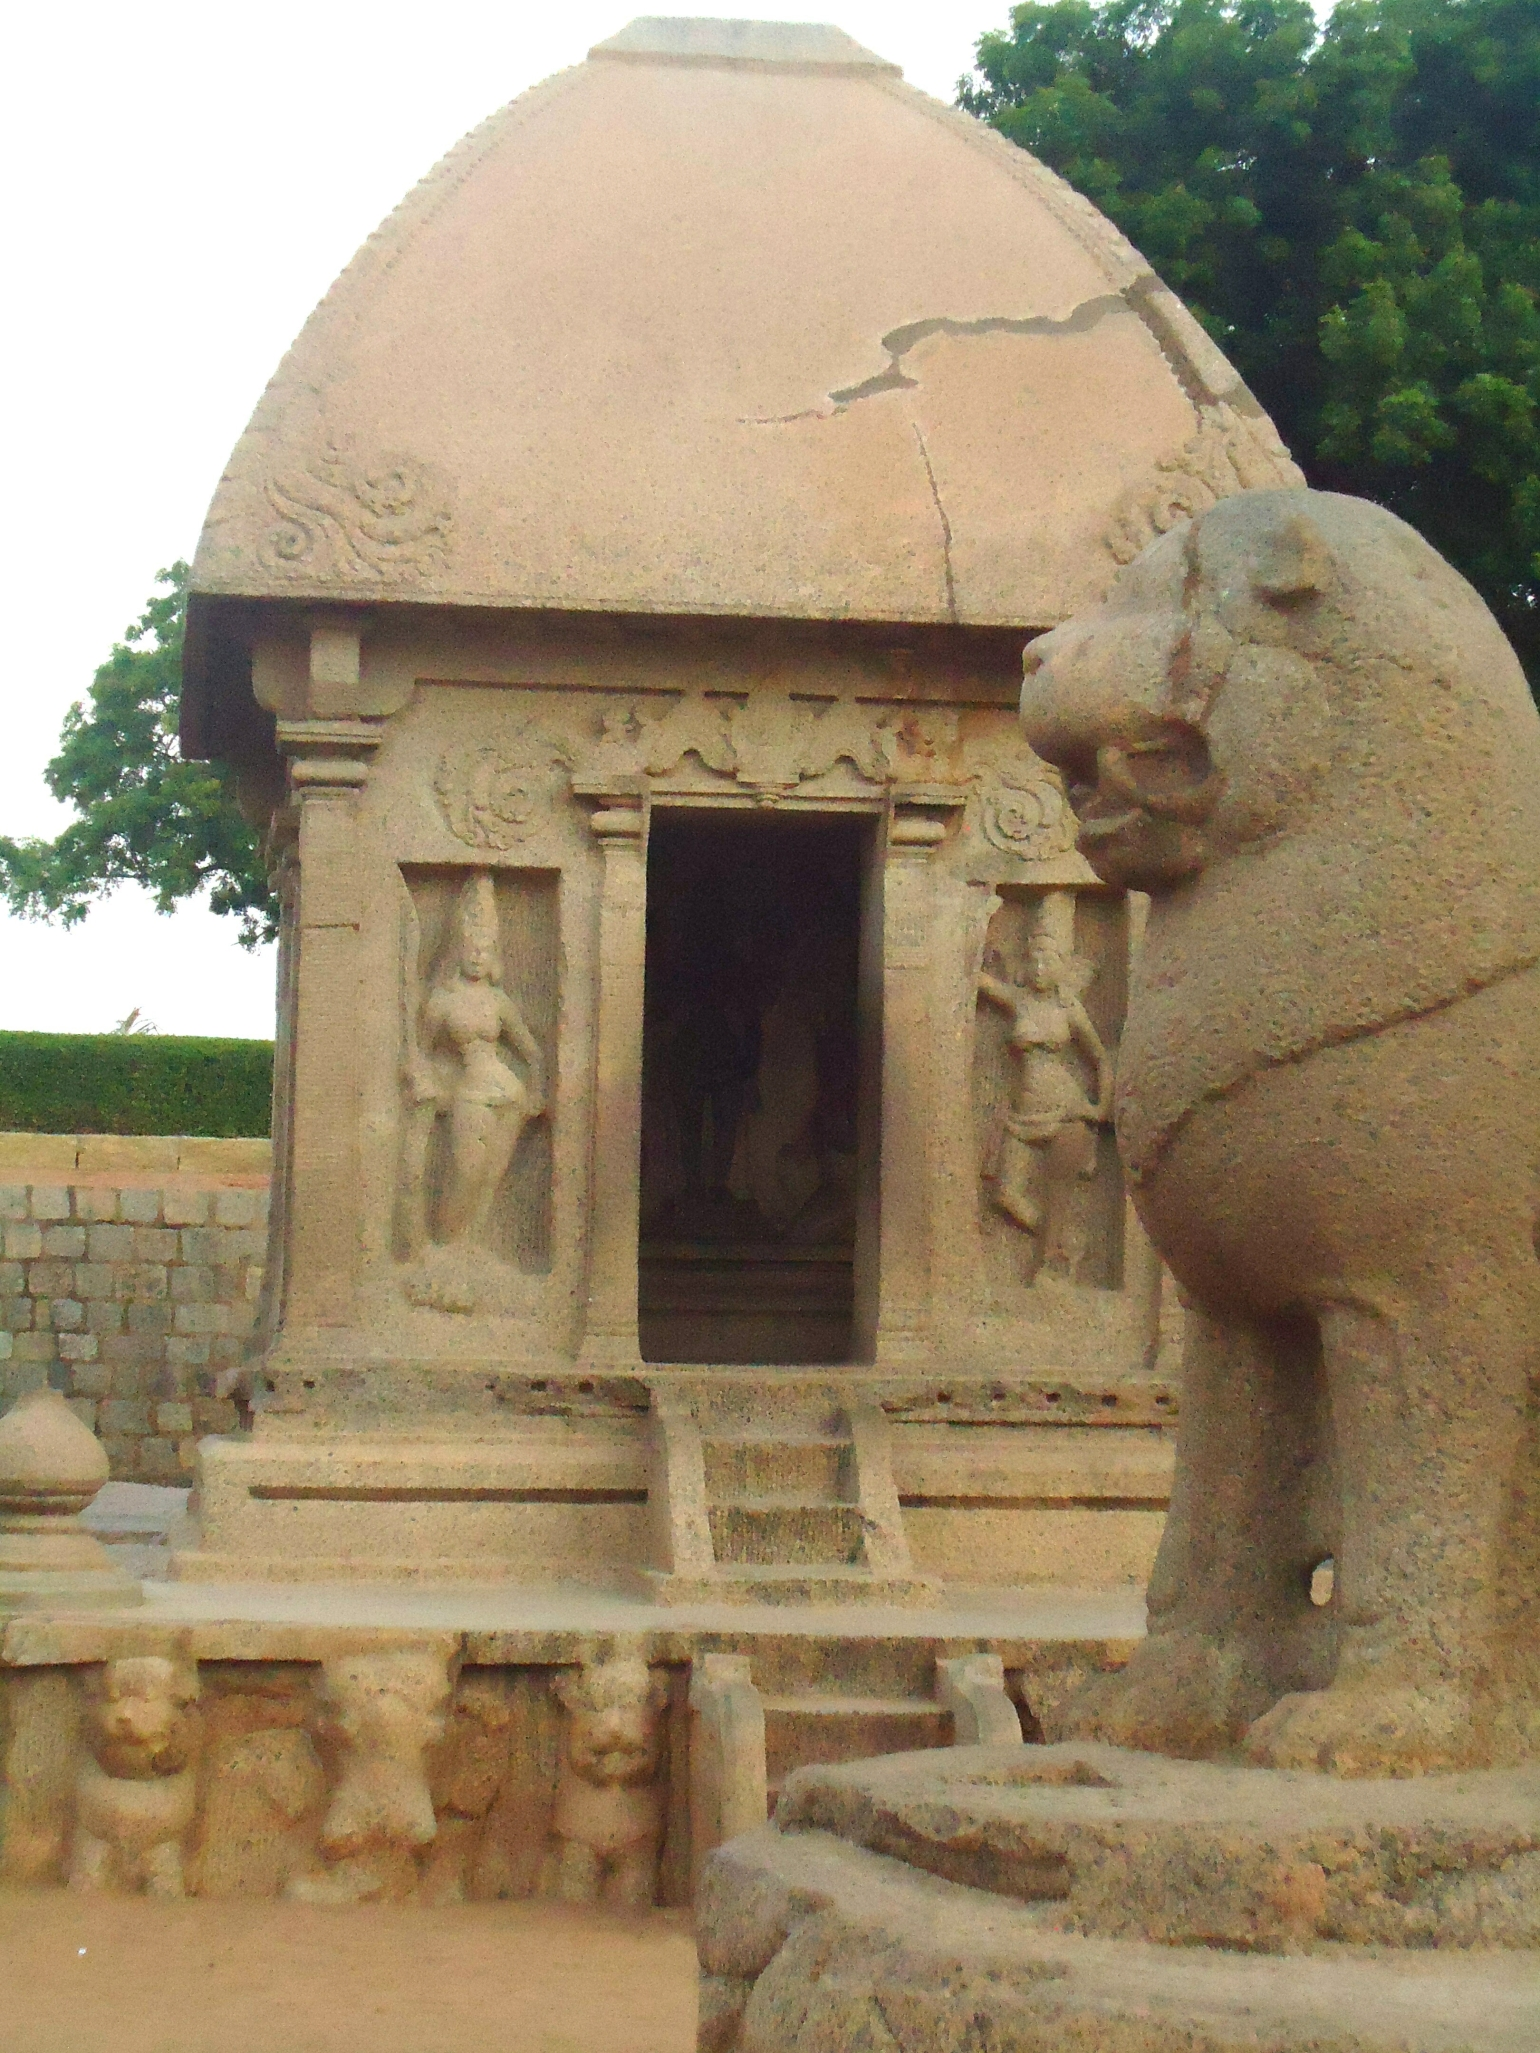 Peek Inside - A shot of the Profile of the Monolithic Lion Sculpture against the background of one of the Pagodas at Mahabalipuram